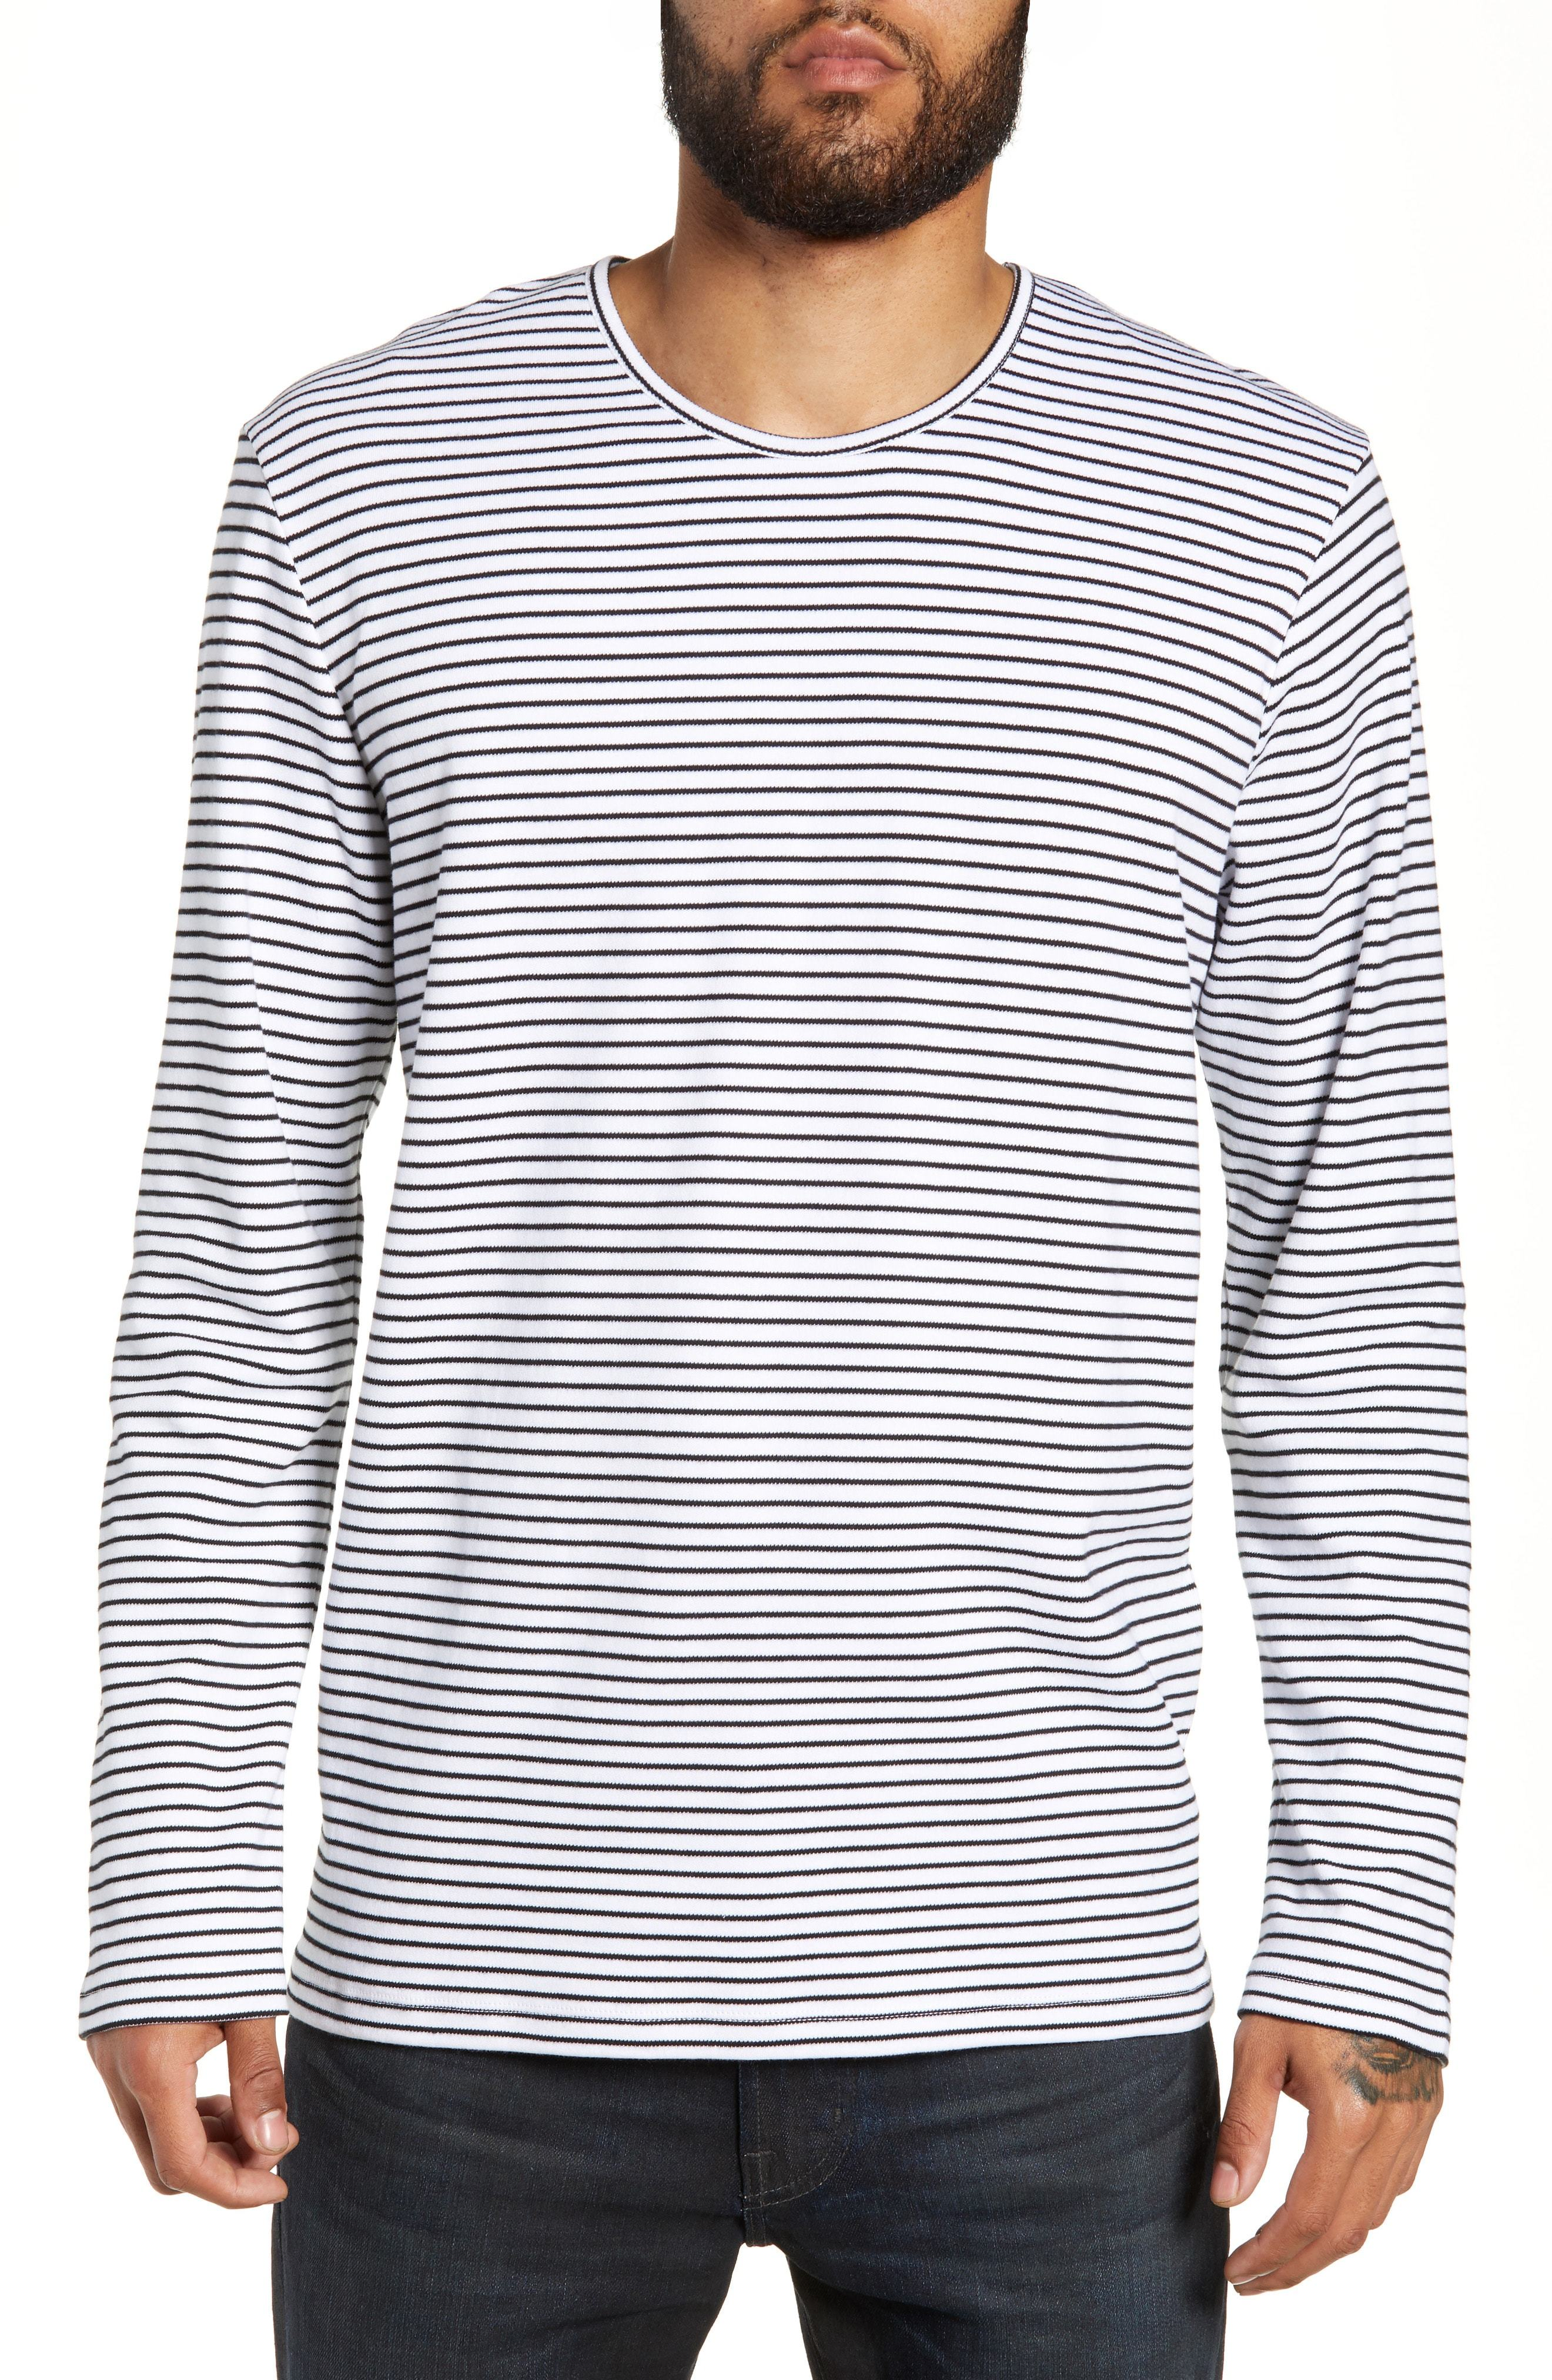 WAX LONDON Finham Stripe Long Sleeve T Shirt